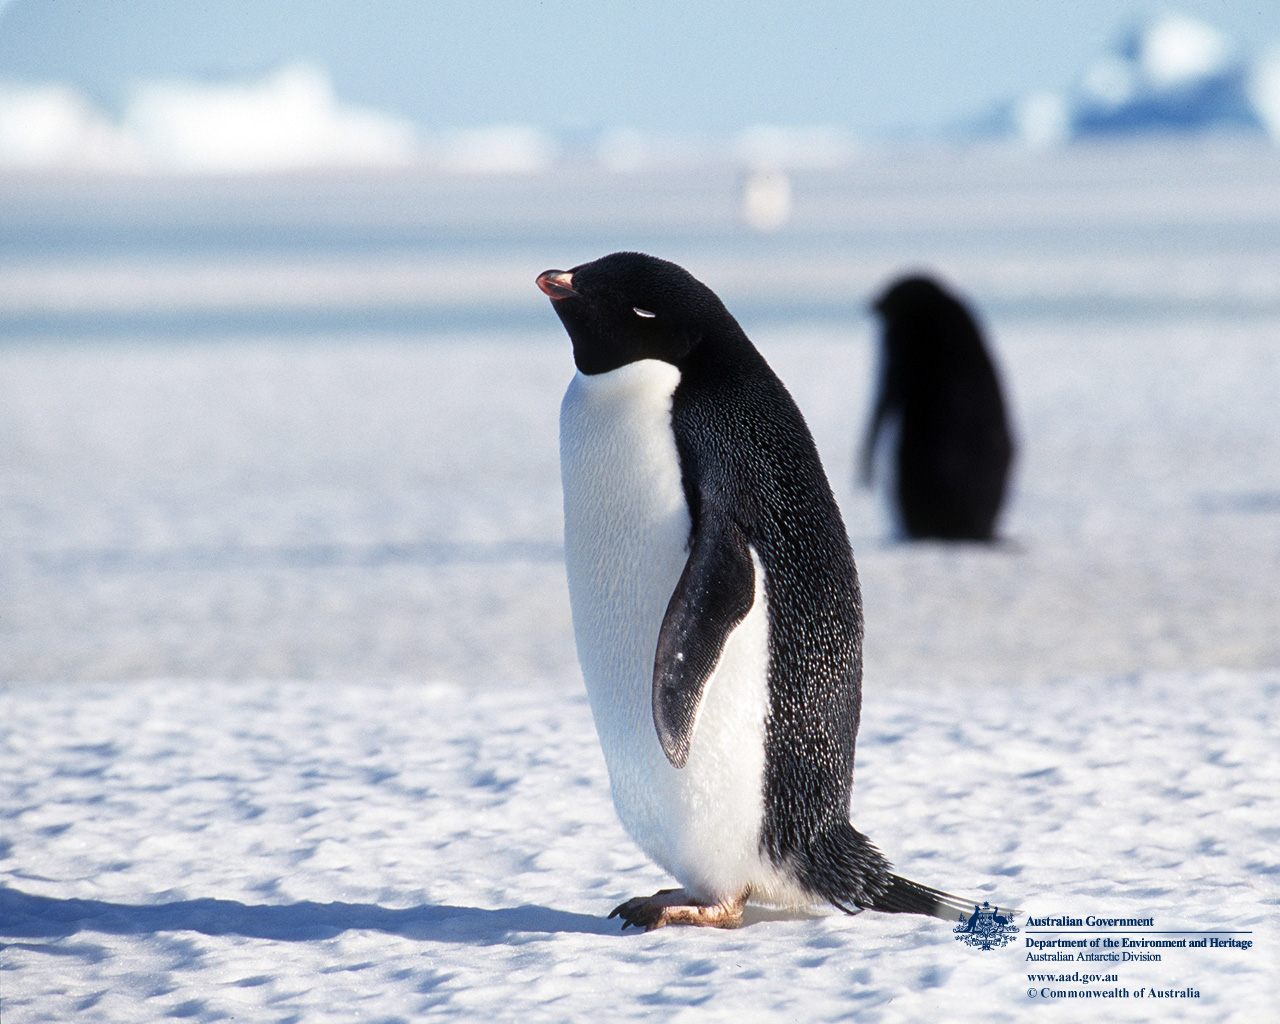 Penguins Cute Animals and Beautiful Photos 1280x1024